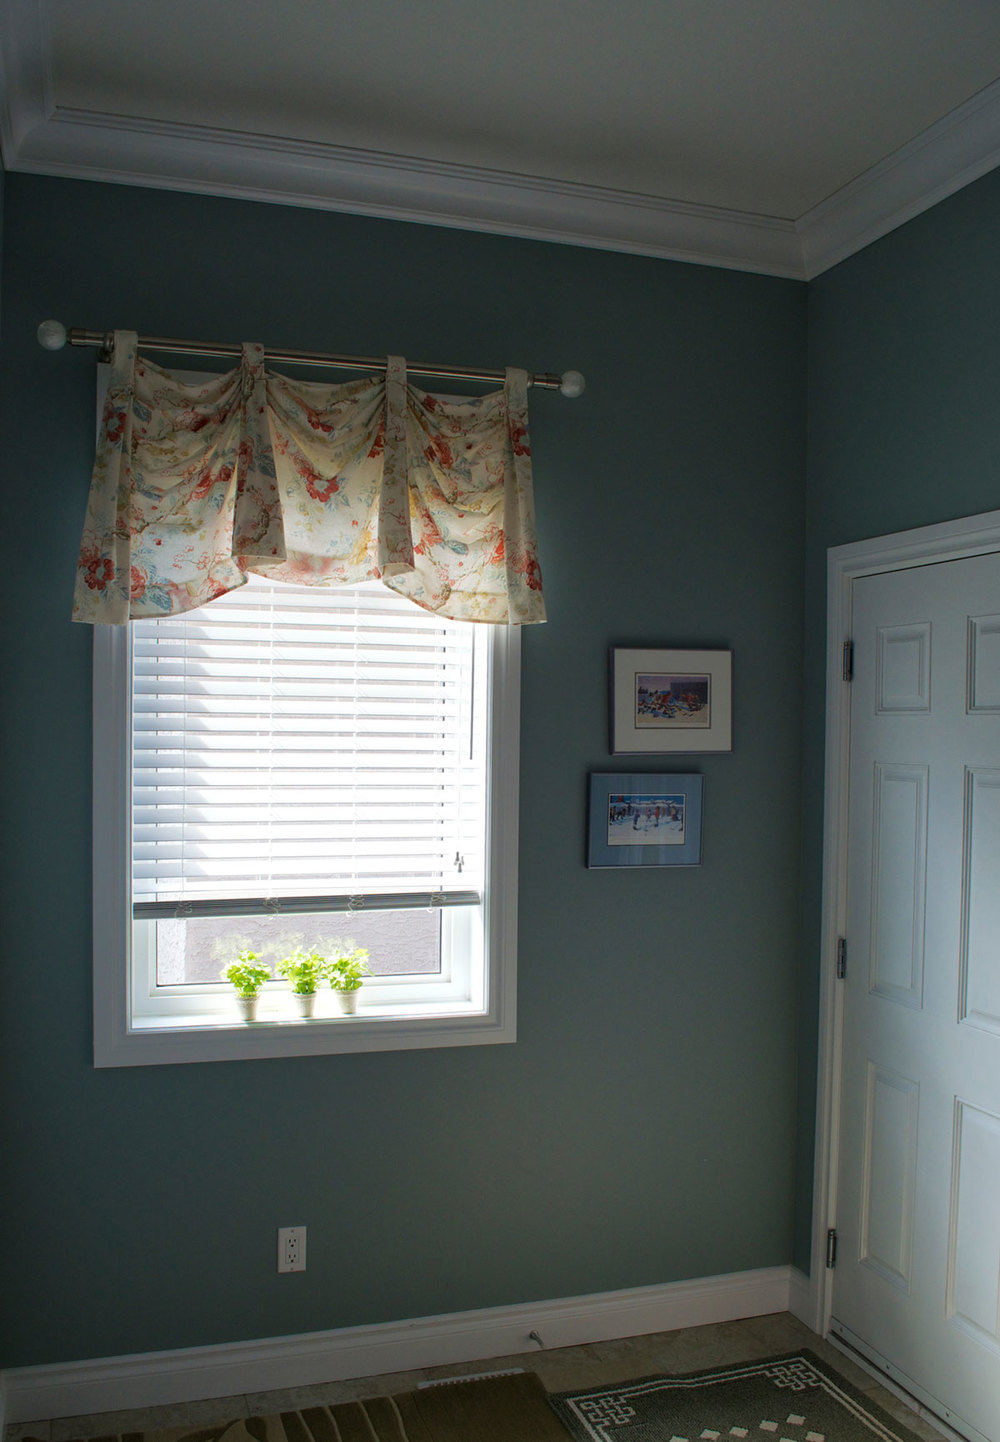 <p><strong></strong>Days Design Custom -  Open Kingston swag valance- Fabric- Kravet LA 1337, color 519, Joanne Hardware